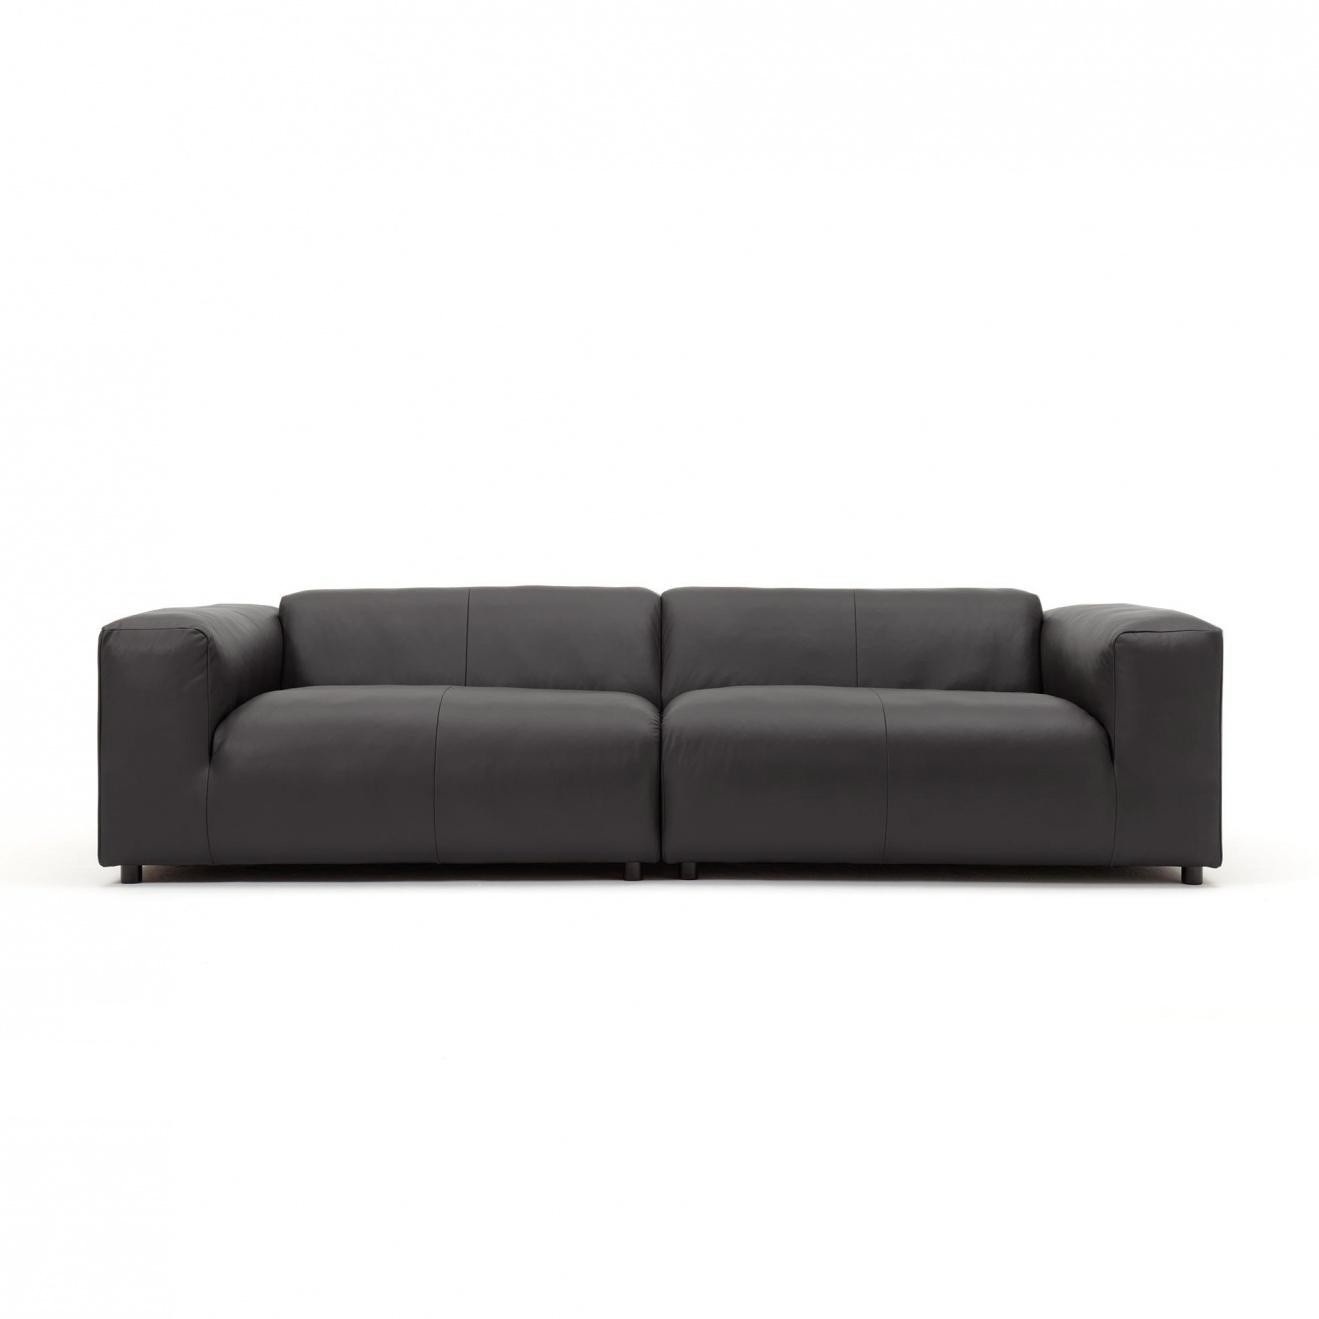 rolf benz freistil sofa no 180 cleaning los angeles 187 3 seater leather ambientedirect 300x67x110cm black